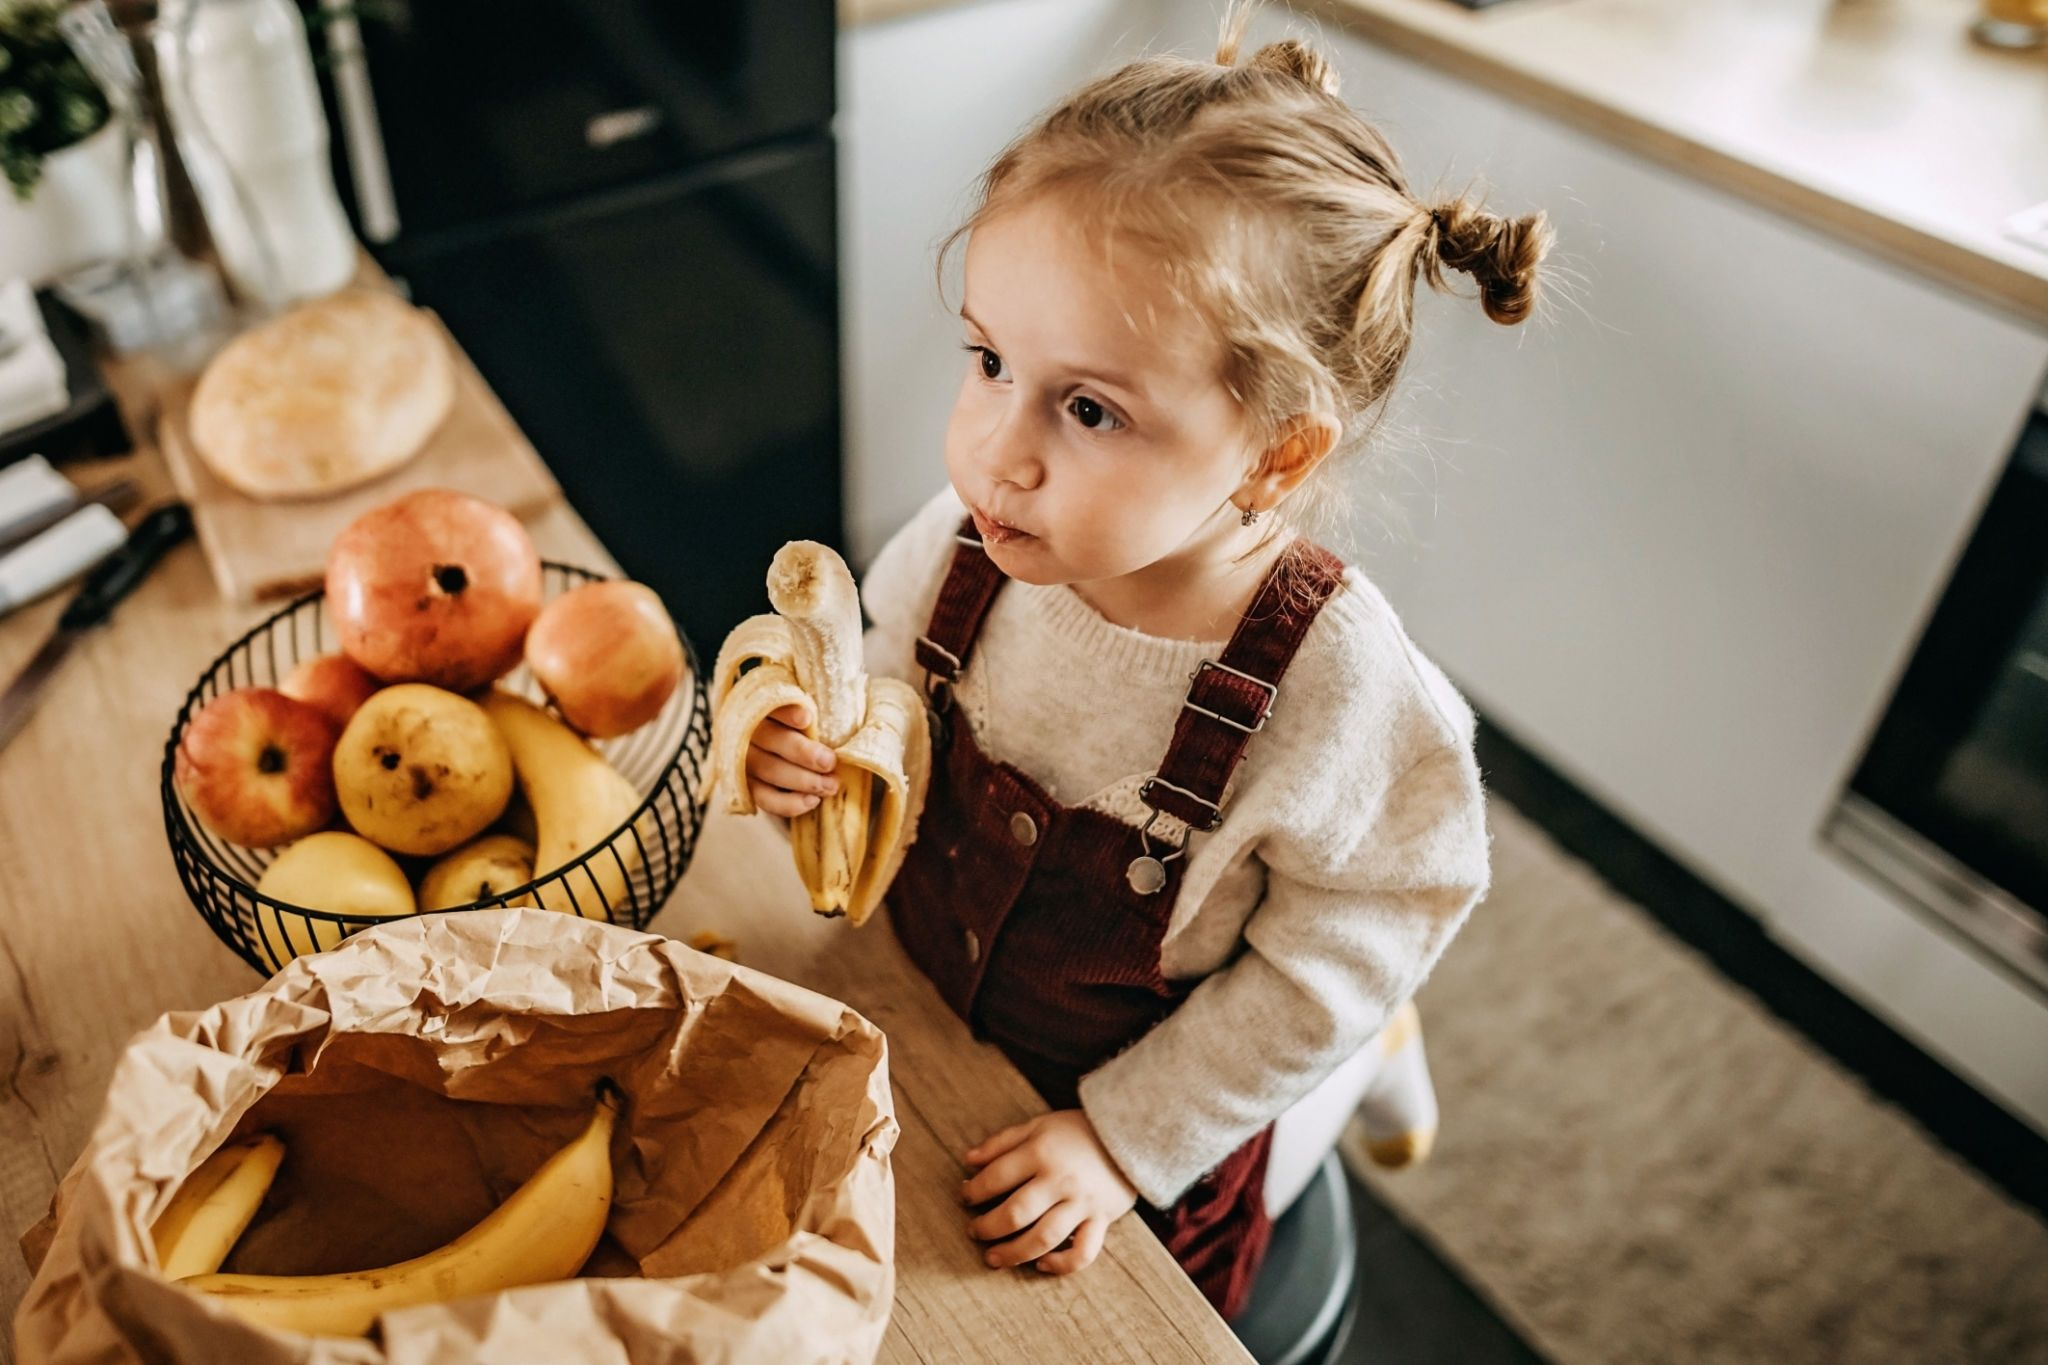 can a toddler eat too many bananas